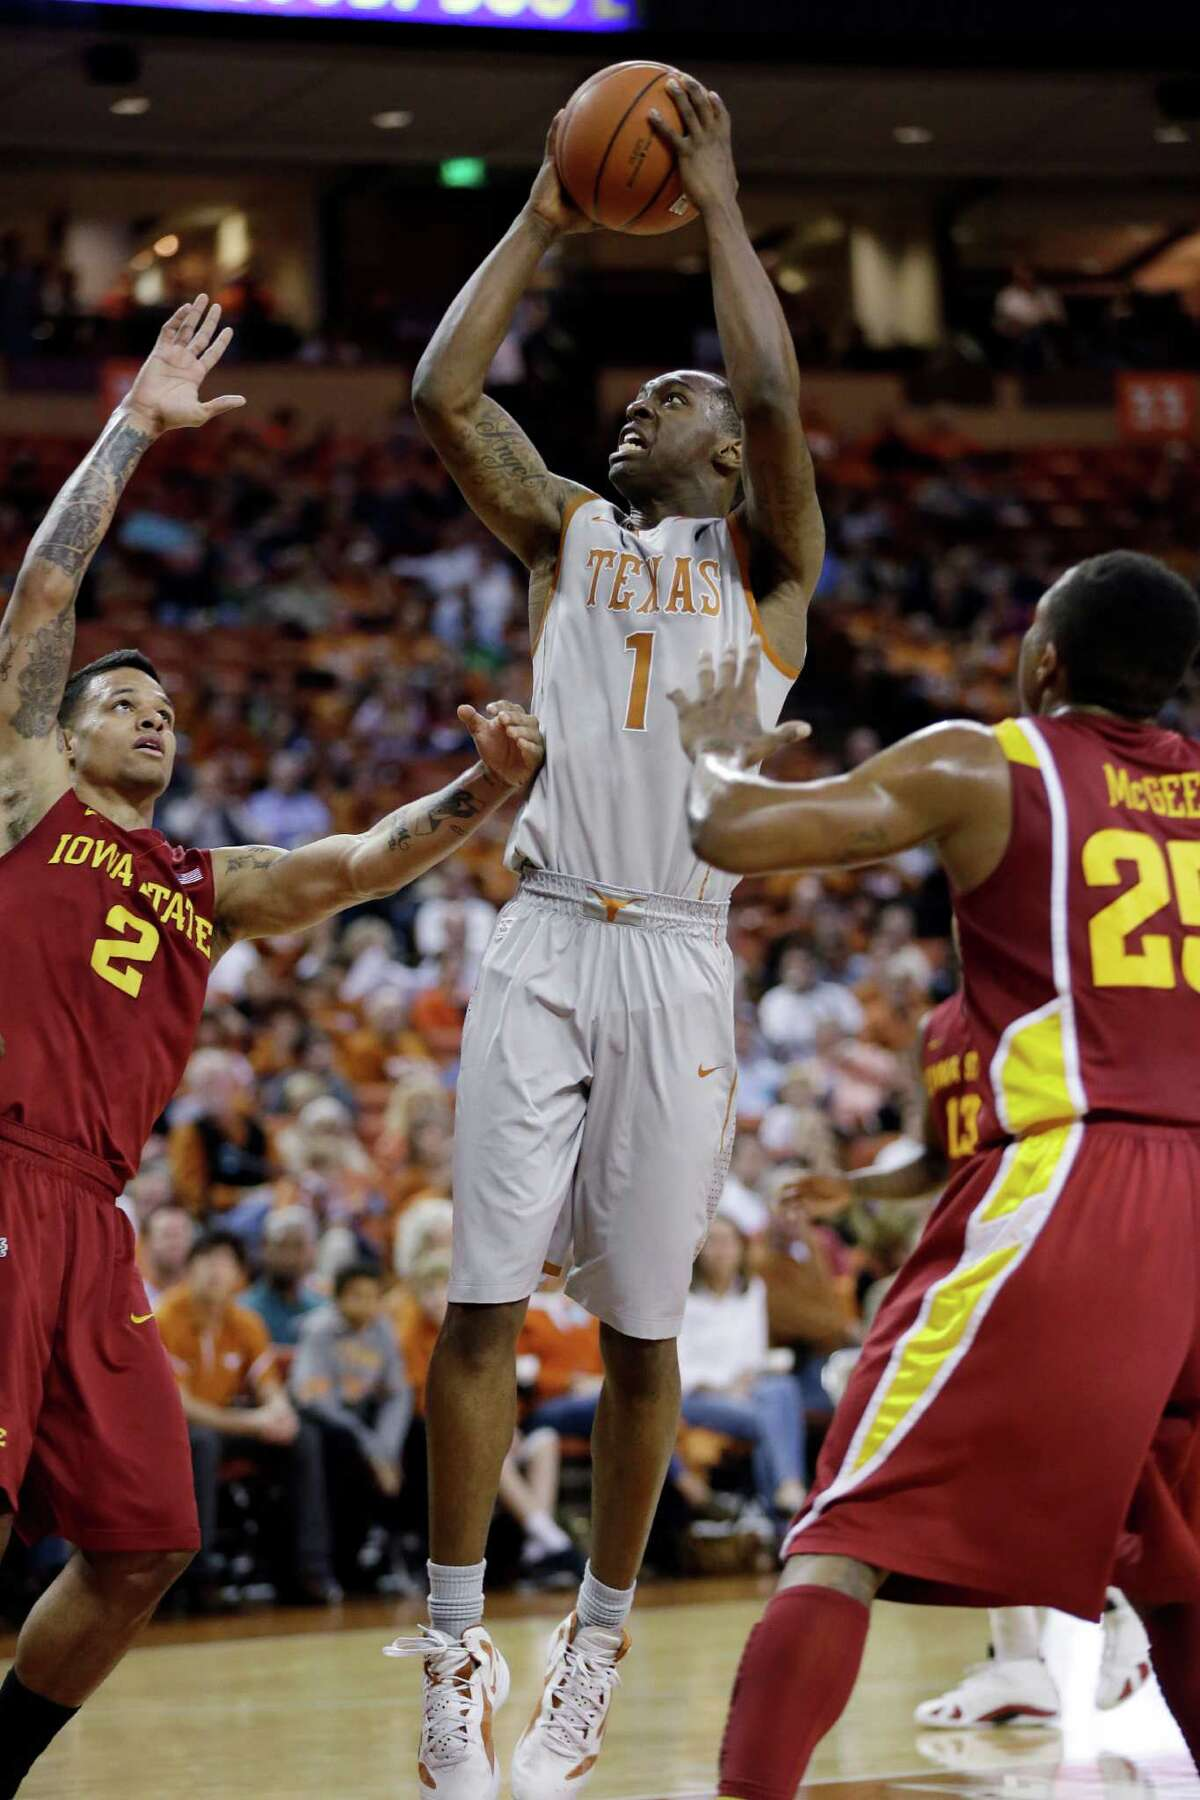 Texas' Sheldon McClellan (1) shoots over Iowa State's Chris Babb (2) and Tyrus McGee (25) during the first half of an NCAA college basketball game, Wednesday, Feb. 13, 2013, in Austin, Texas. (AP Photo/Eric Gay)